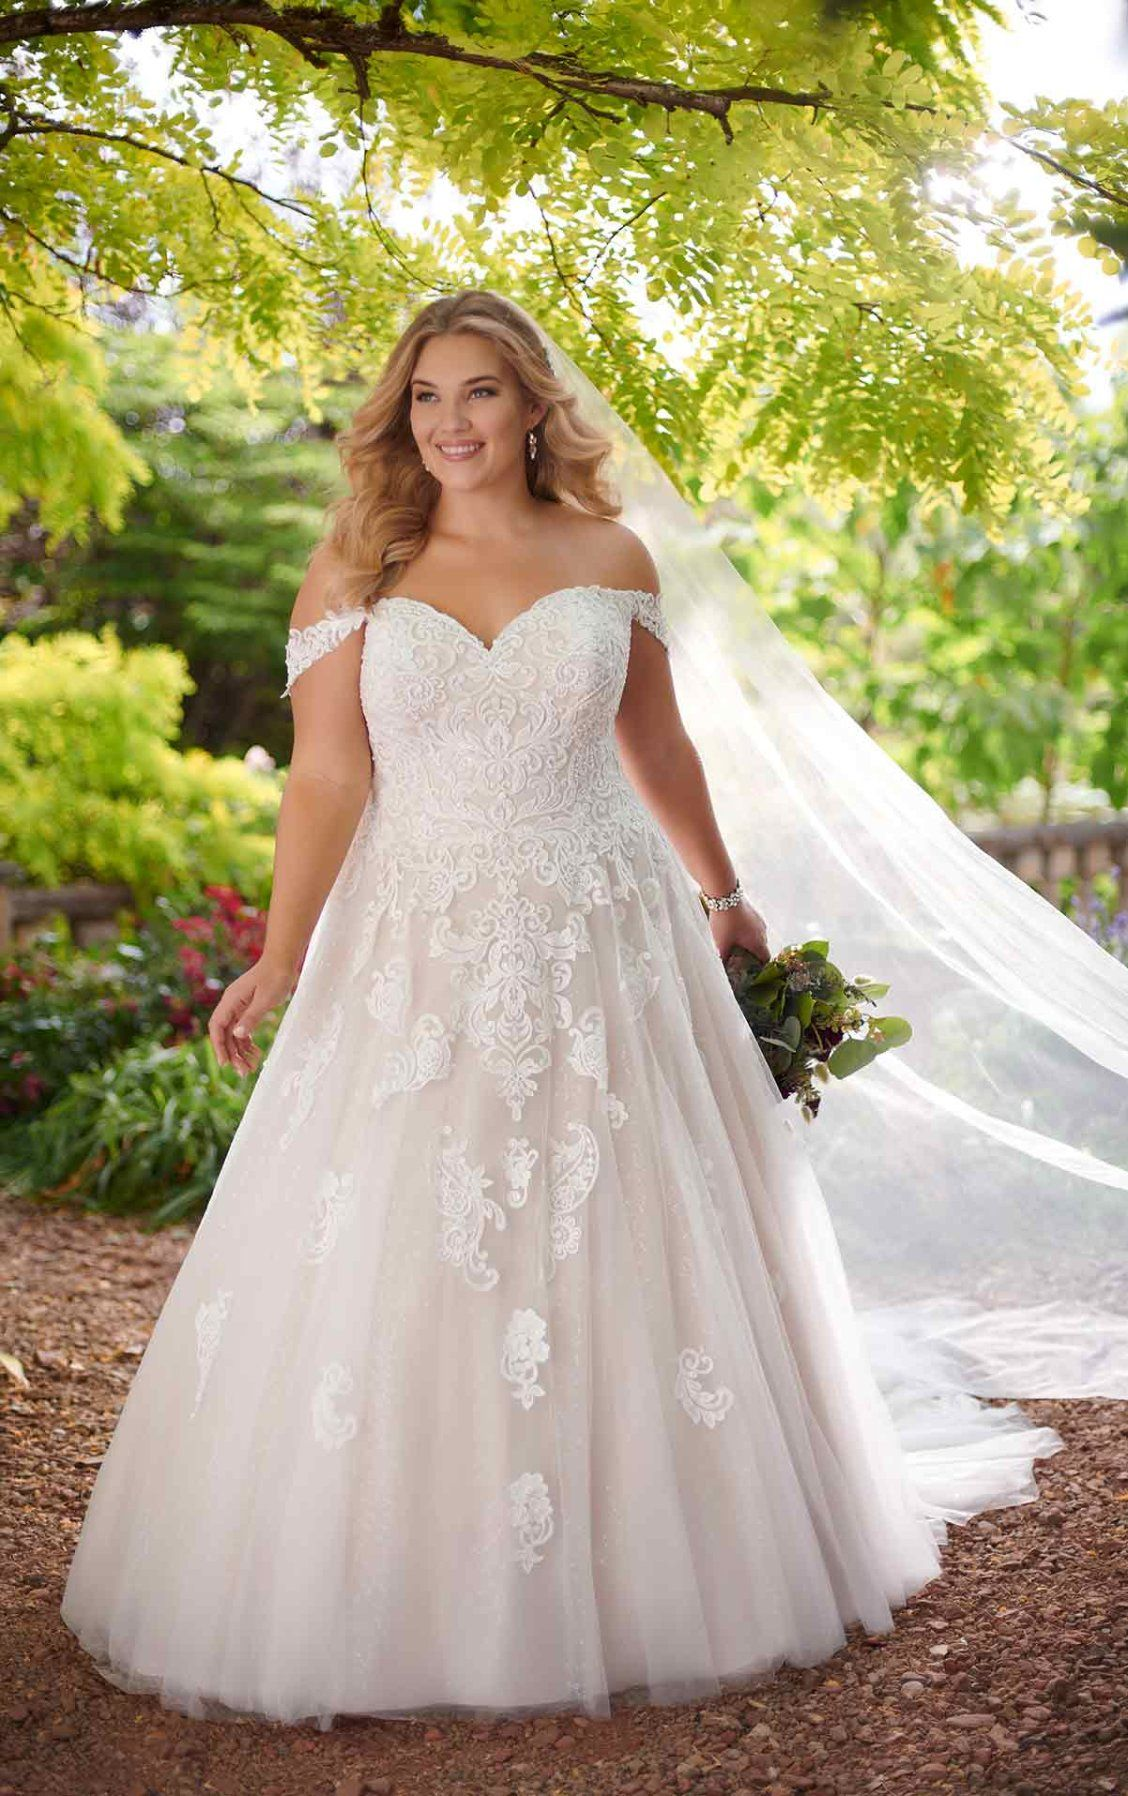 Fashion style Dress Wedding designers australia pictures for woman